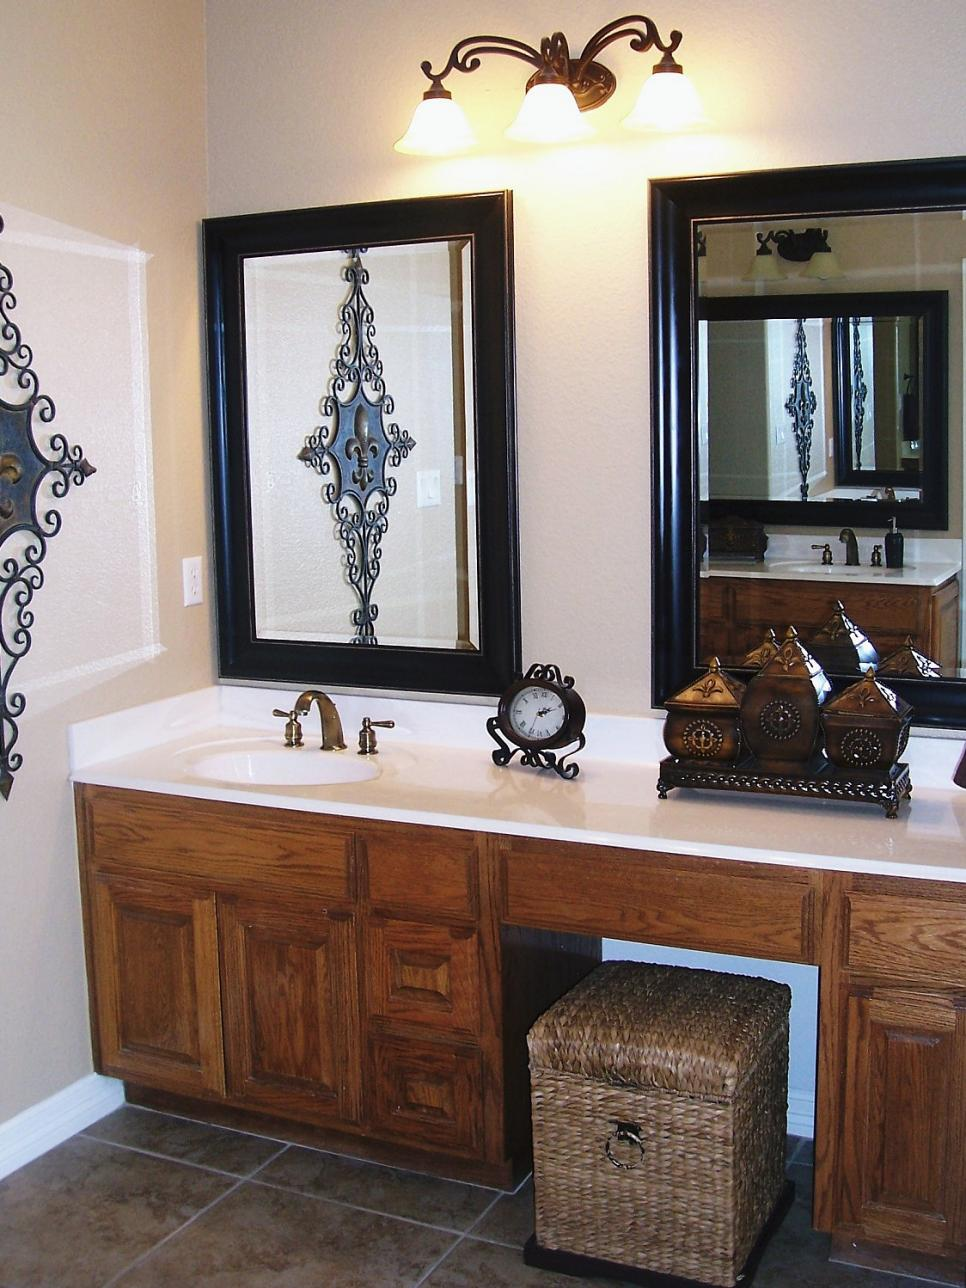 bathroom mirror ideas 10 beautiful bathroom mirrors | hgtv LOBHGTV